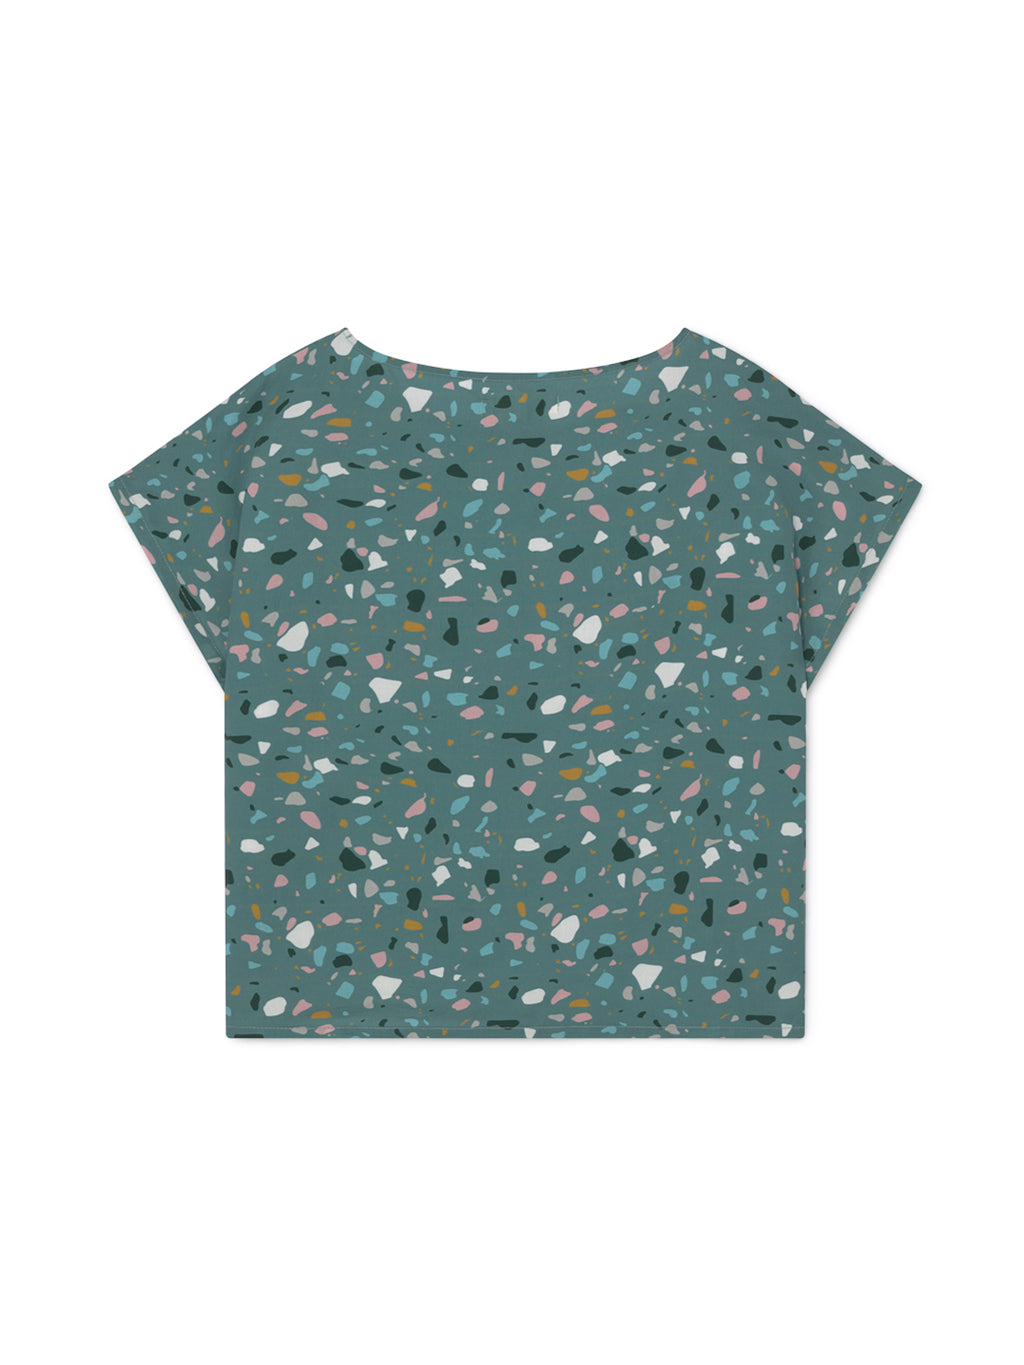 TWOTHIRDS Womens Top: Santa Ines - Dusty Blue Terrazo Print back